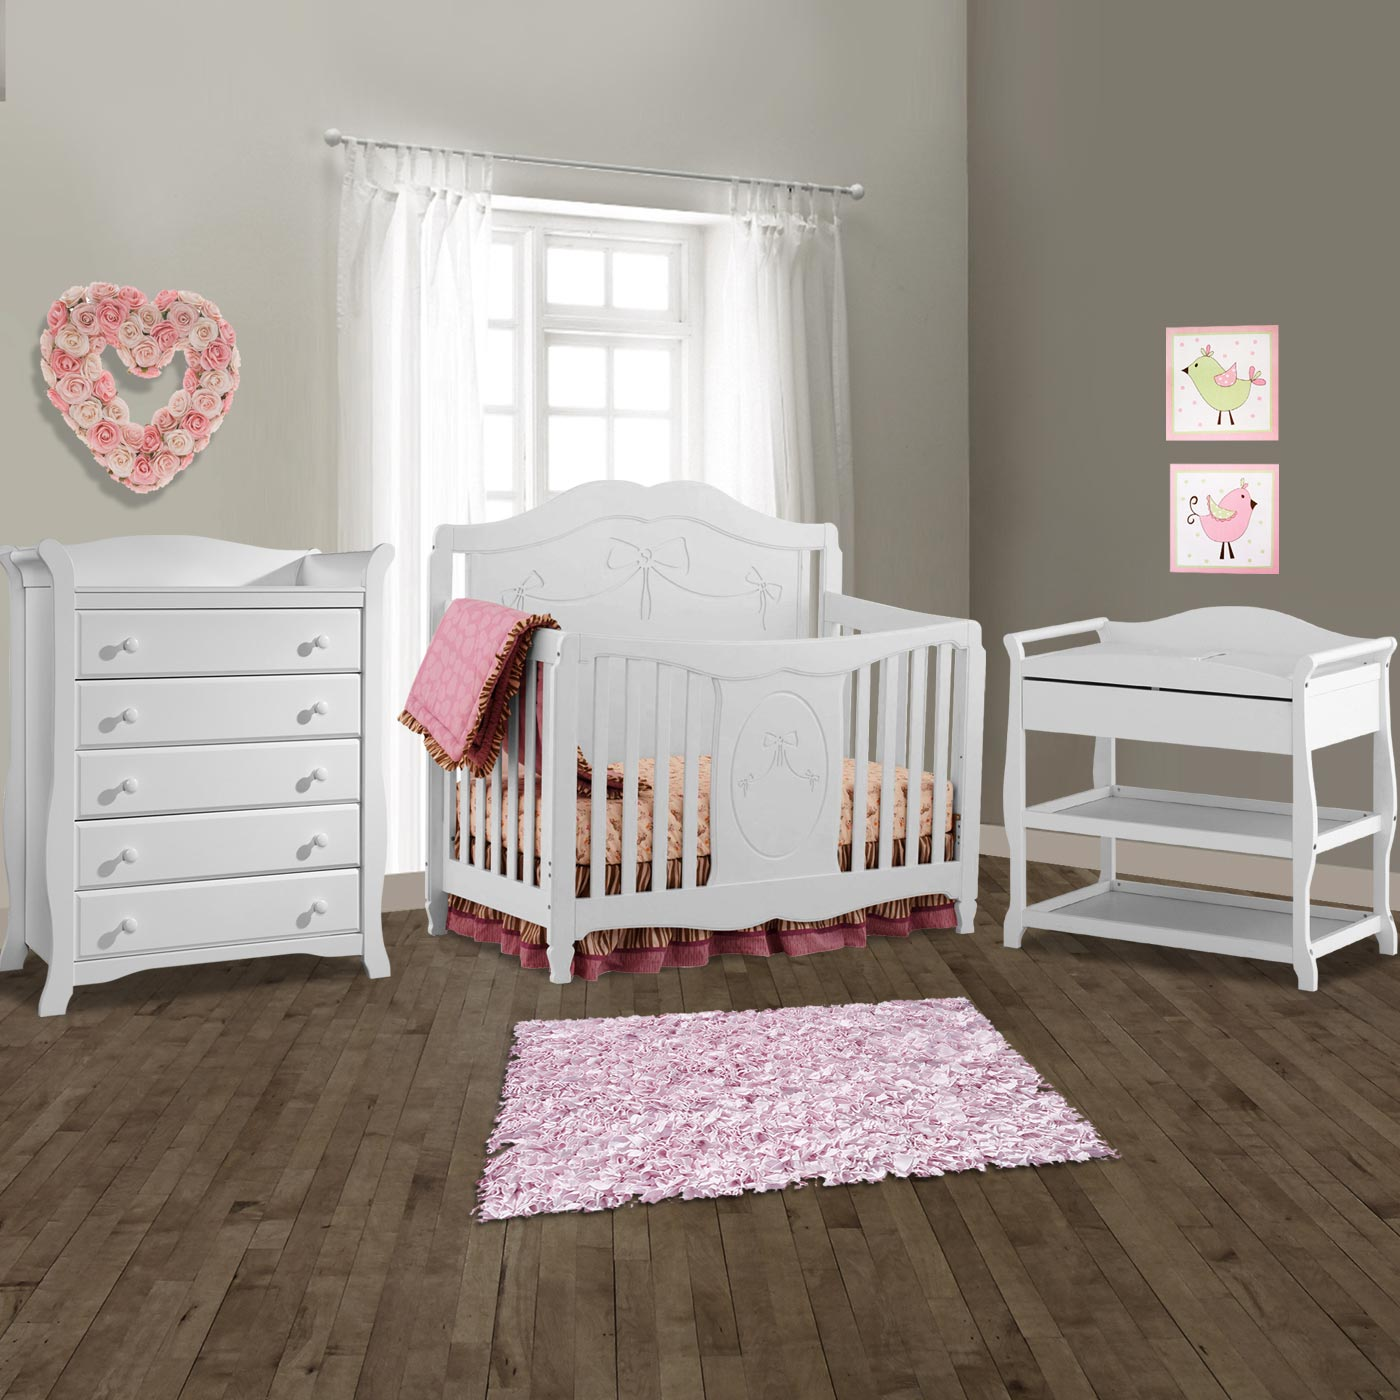 Storkcraft 3 Piece Nursery Set Princess Convertible Crib Aspen Changing Table And Avalon 5 Drawer Dresser In White Free Shipping